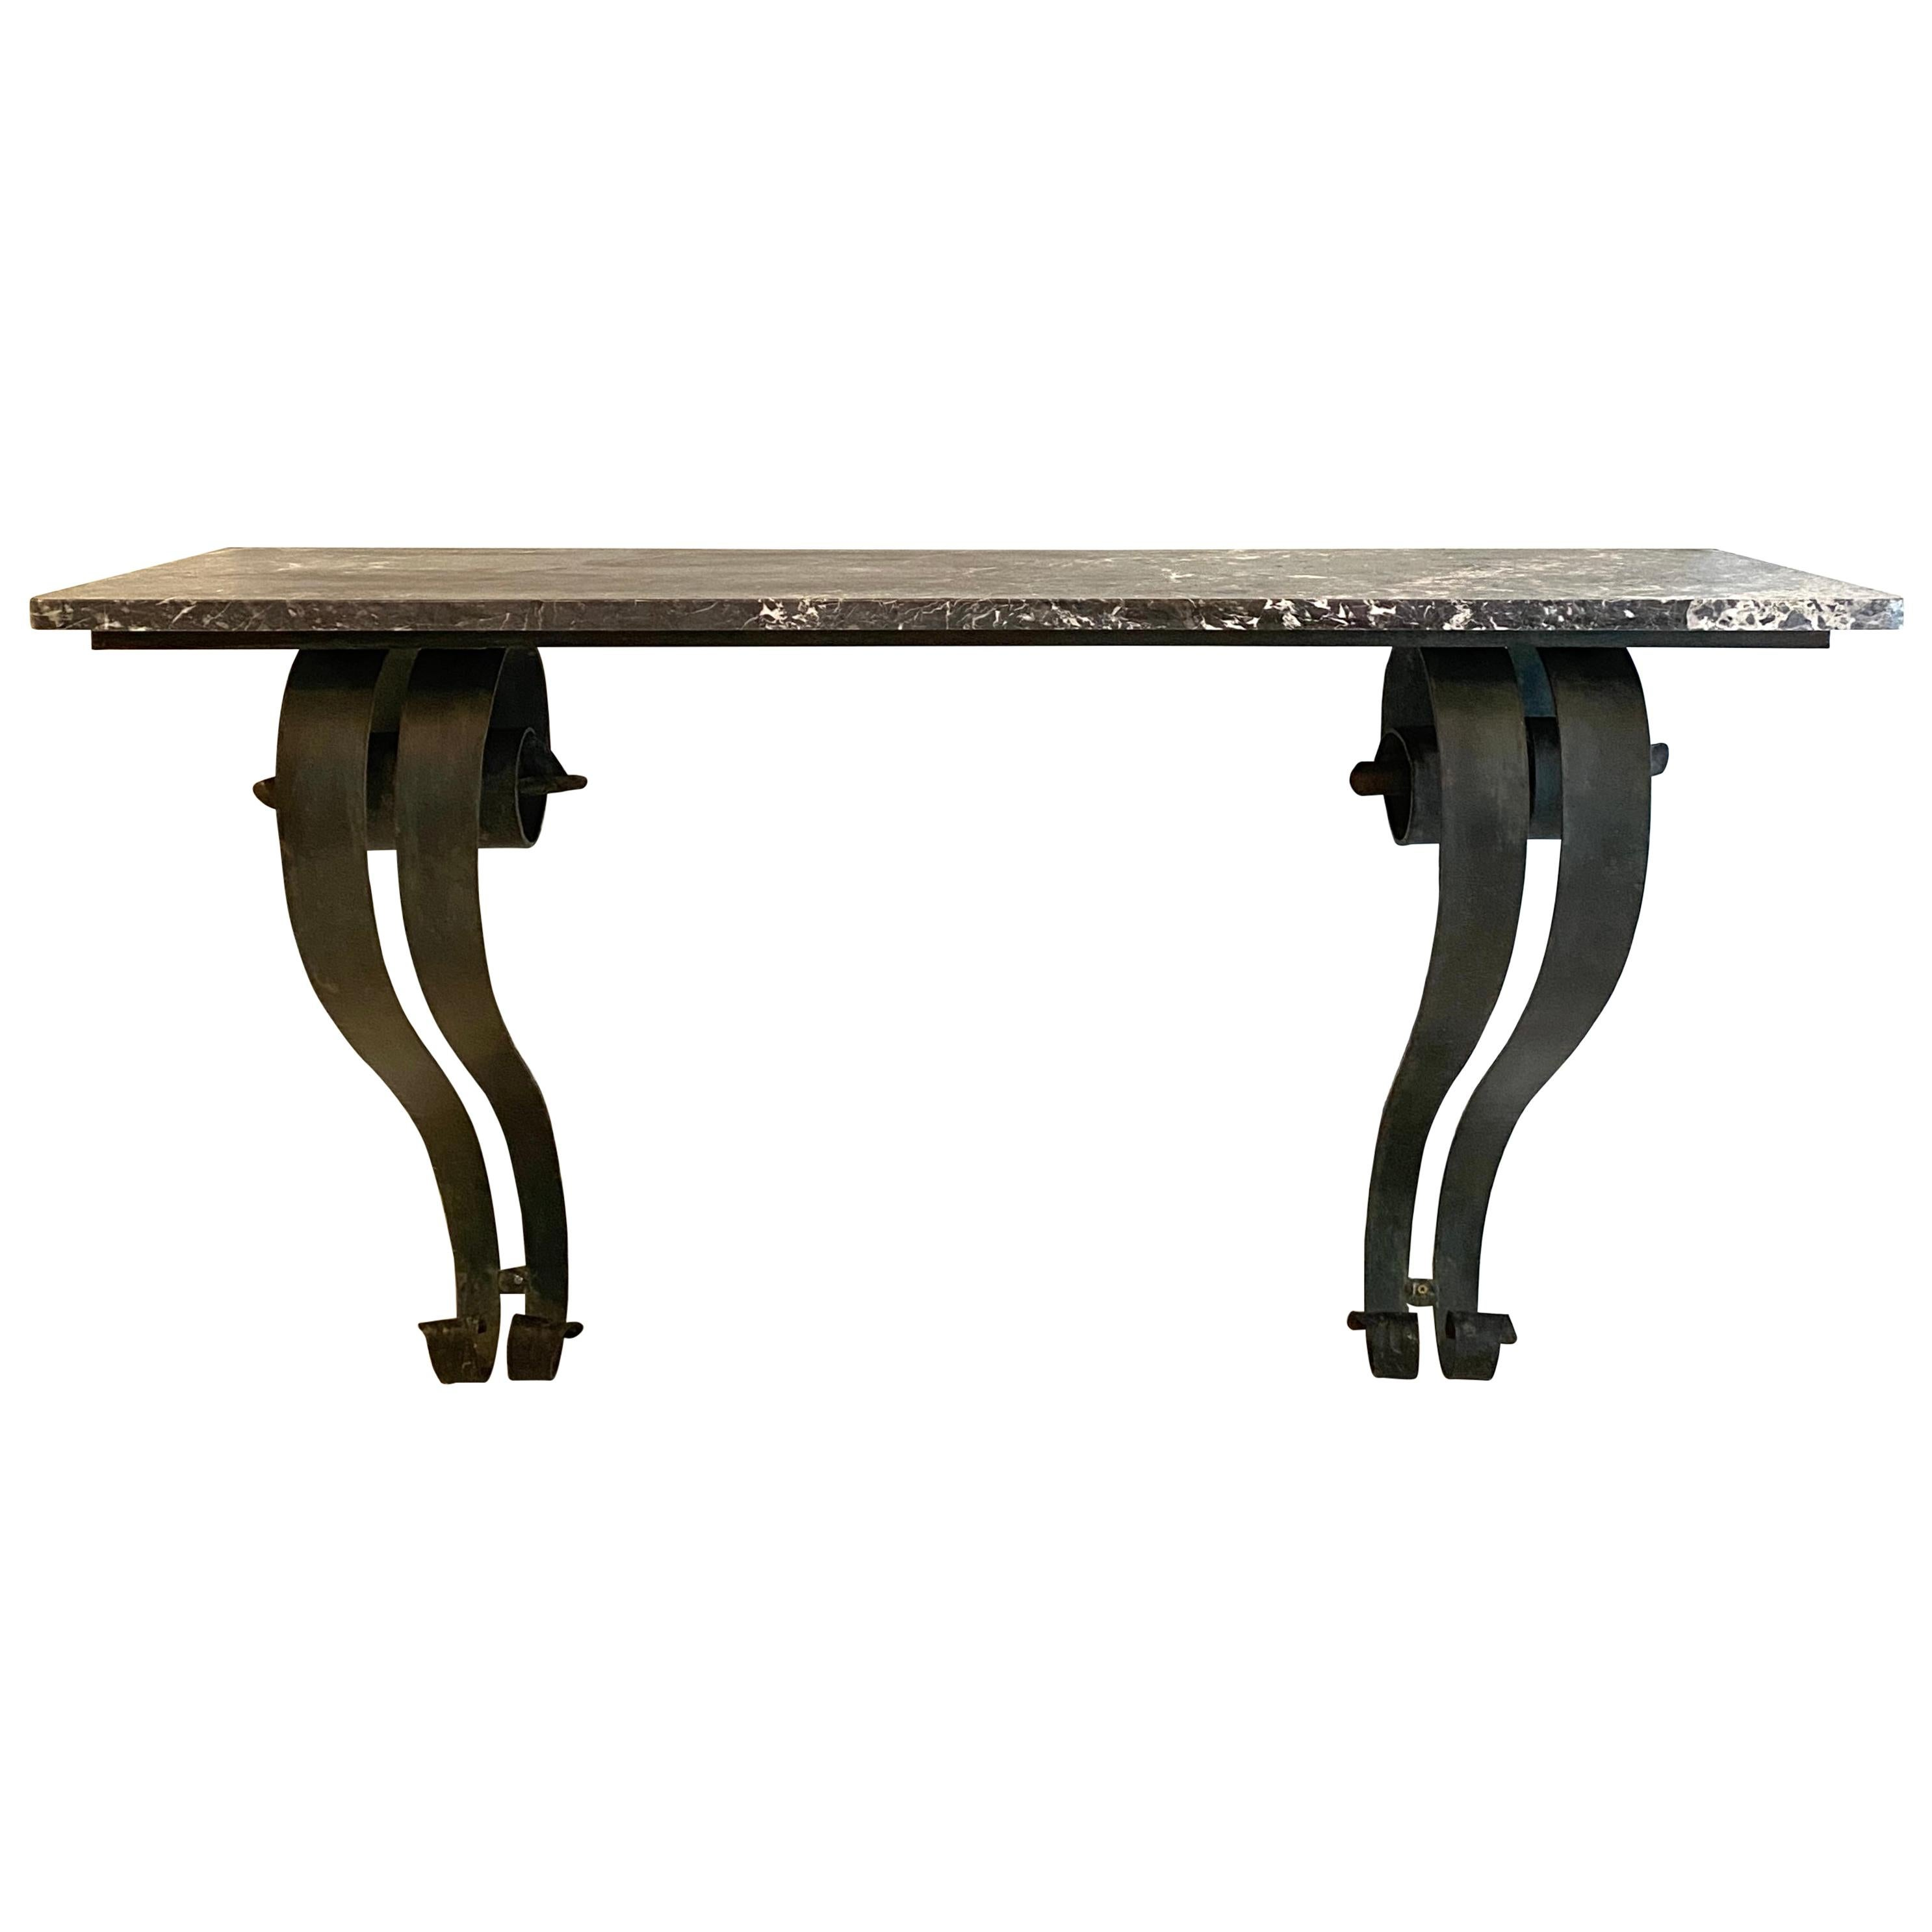 French Art Deco Console Table in Forged Metal and Marble by Raymond Subes, 1925